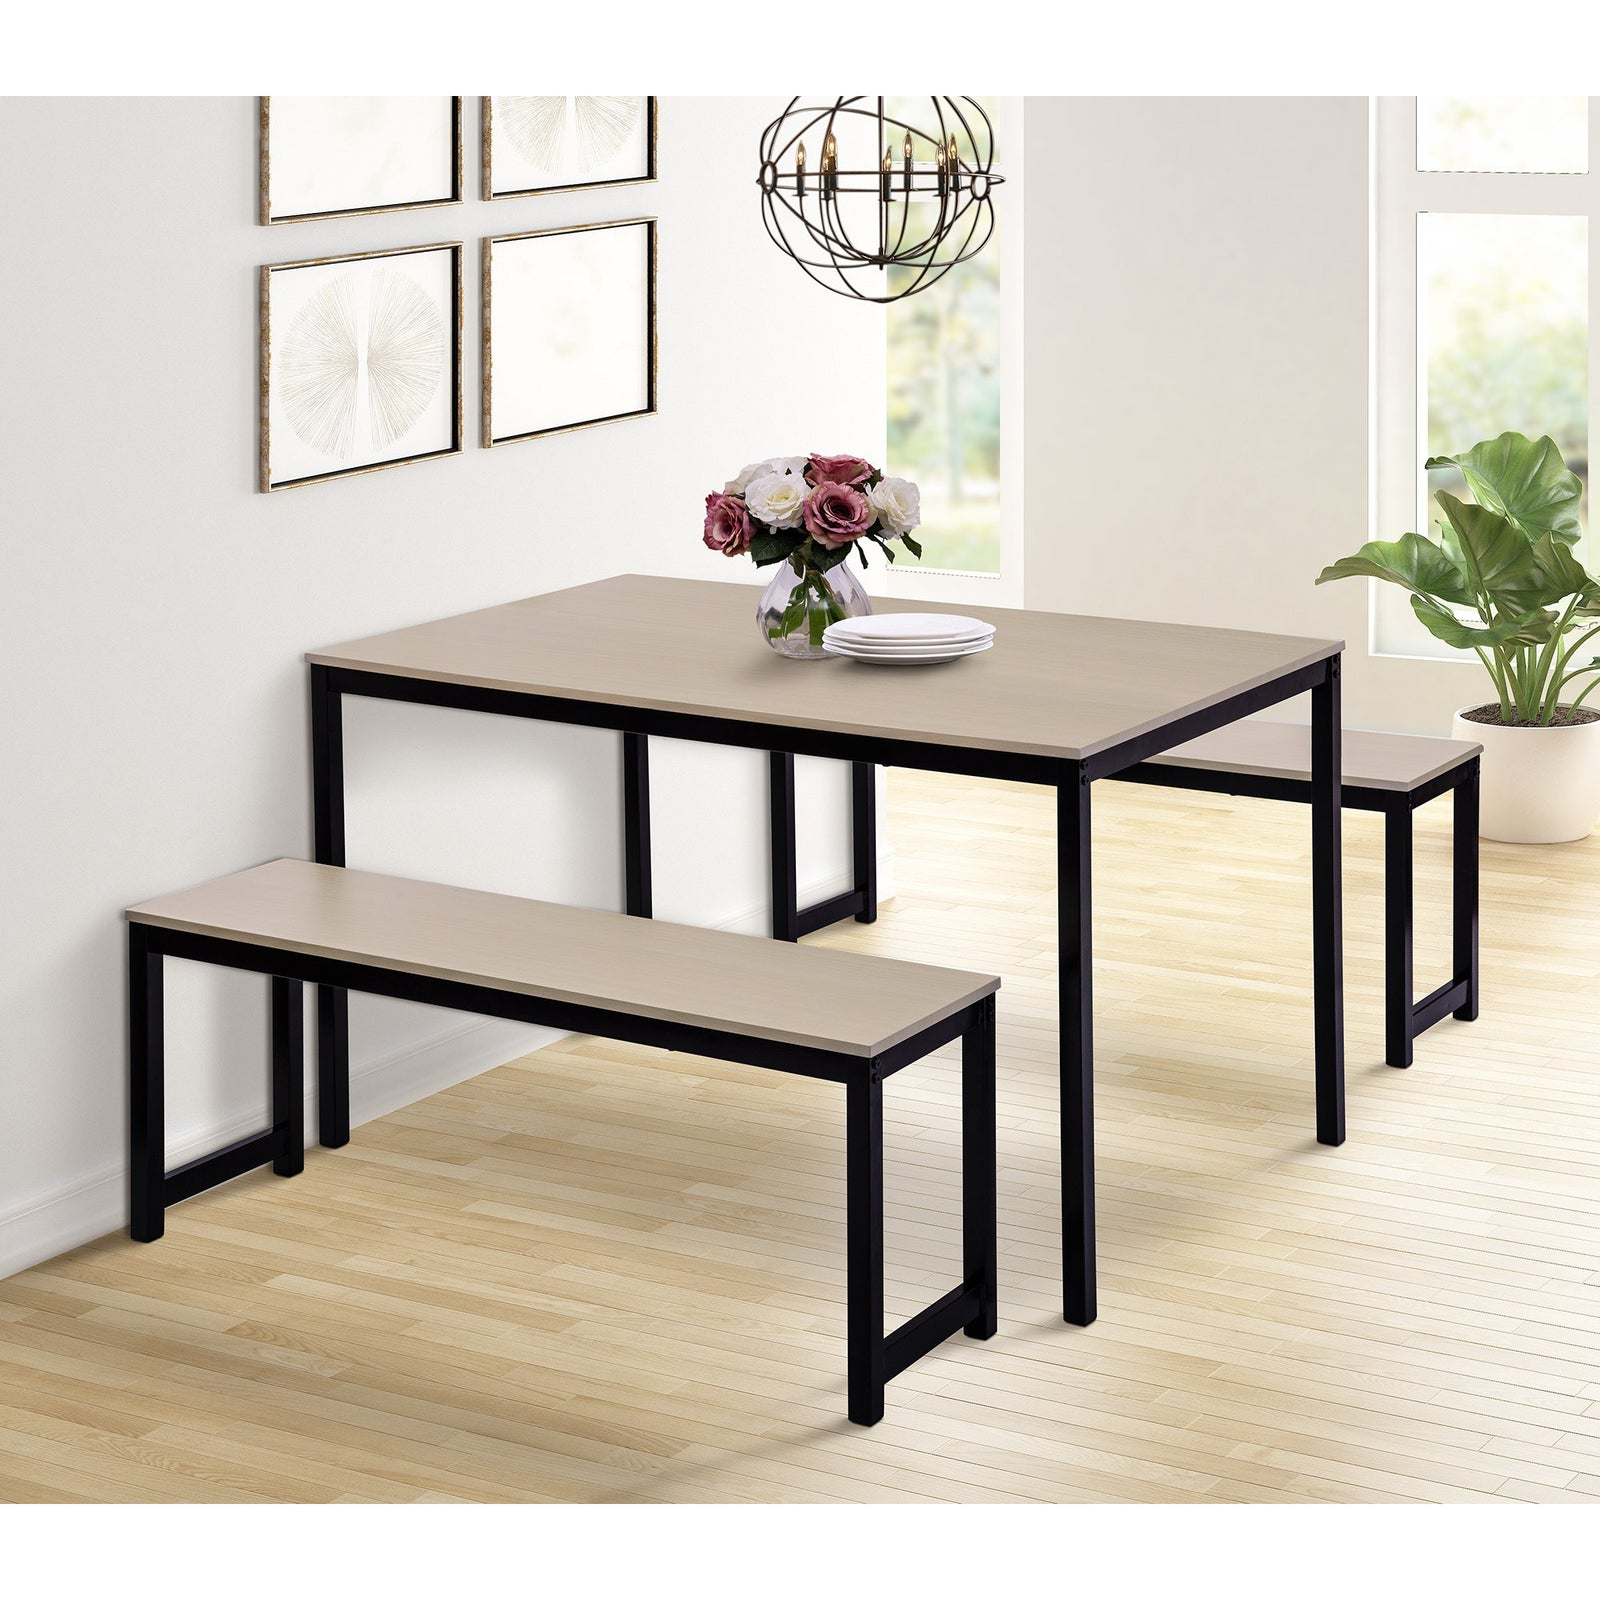 3 Counts - Dining Set with Two benches, Modern Dining Room Furniture - Beige